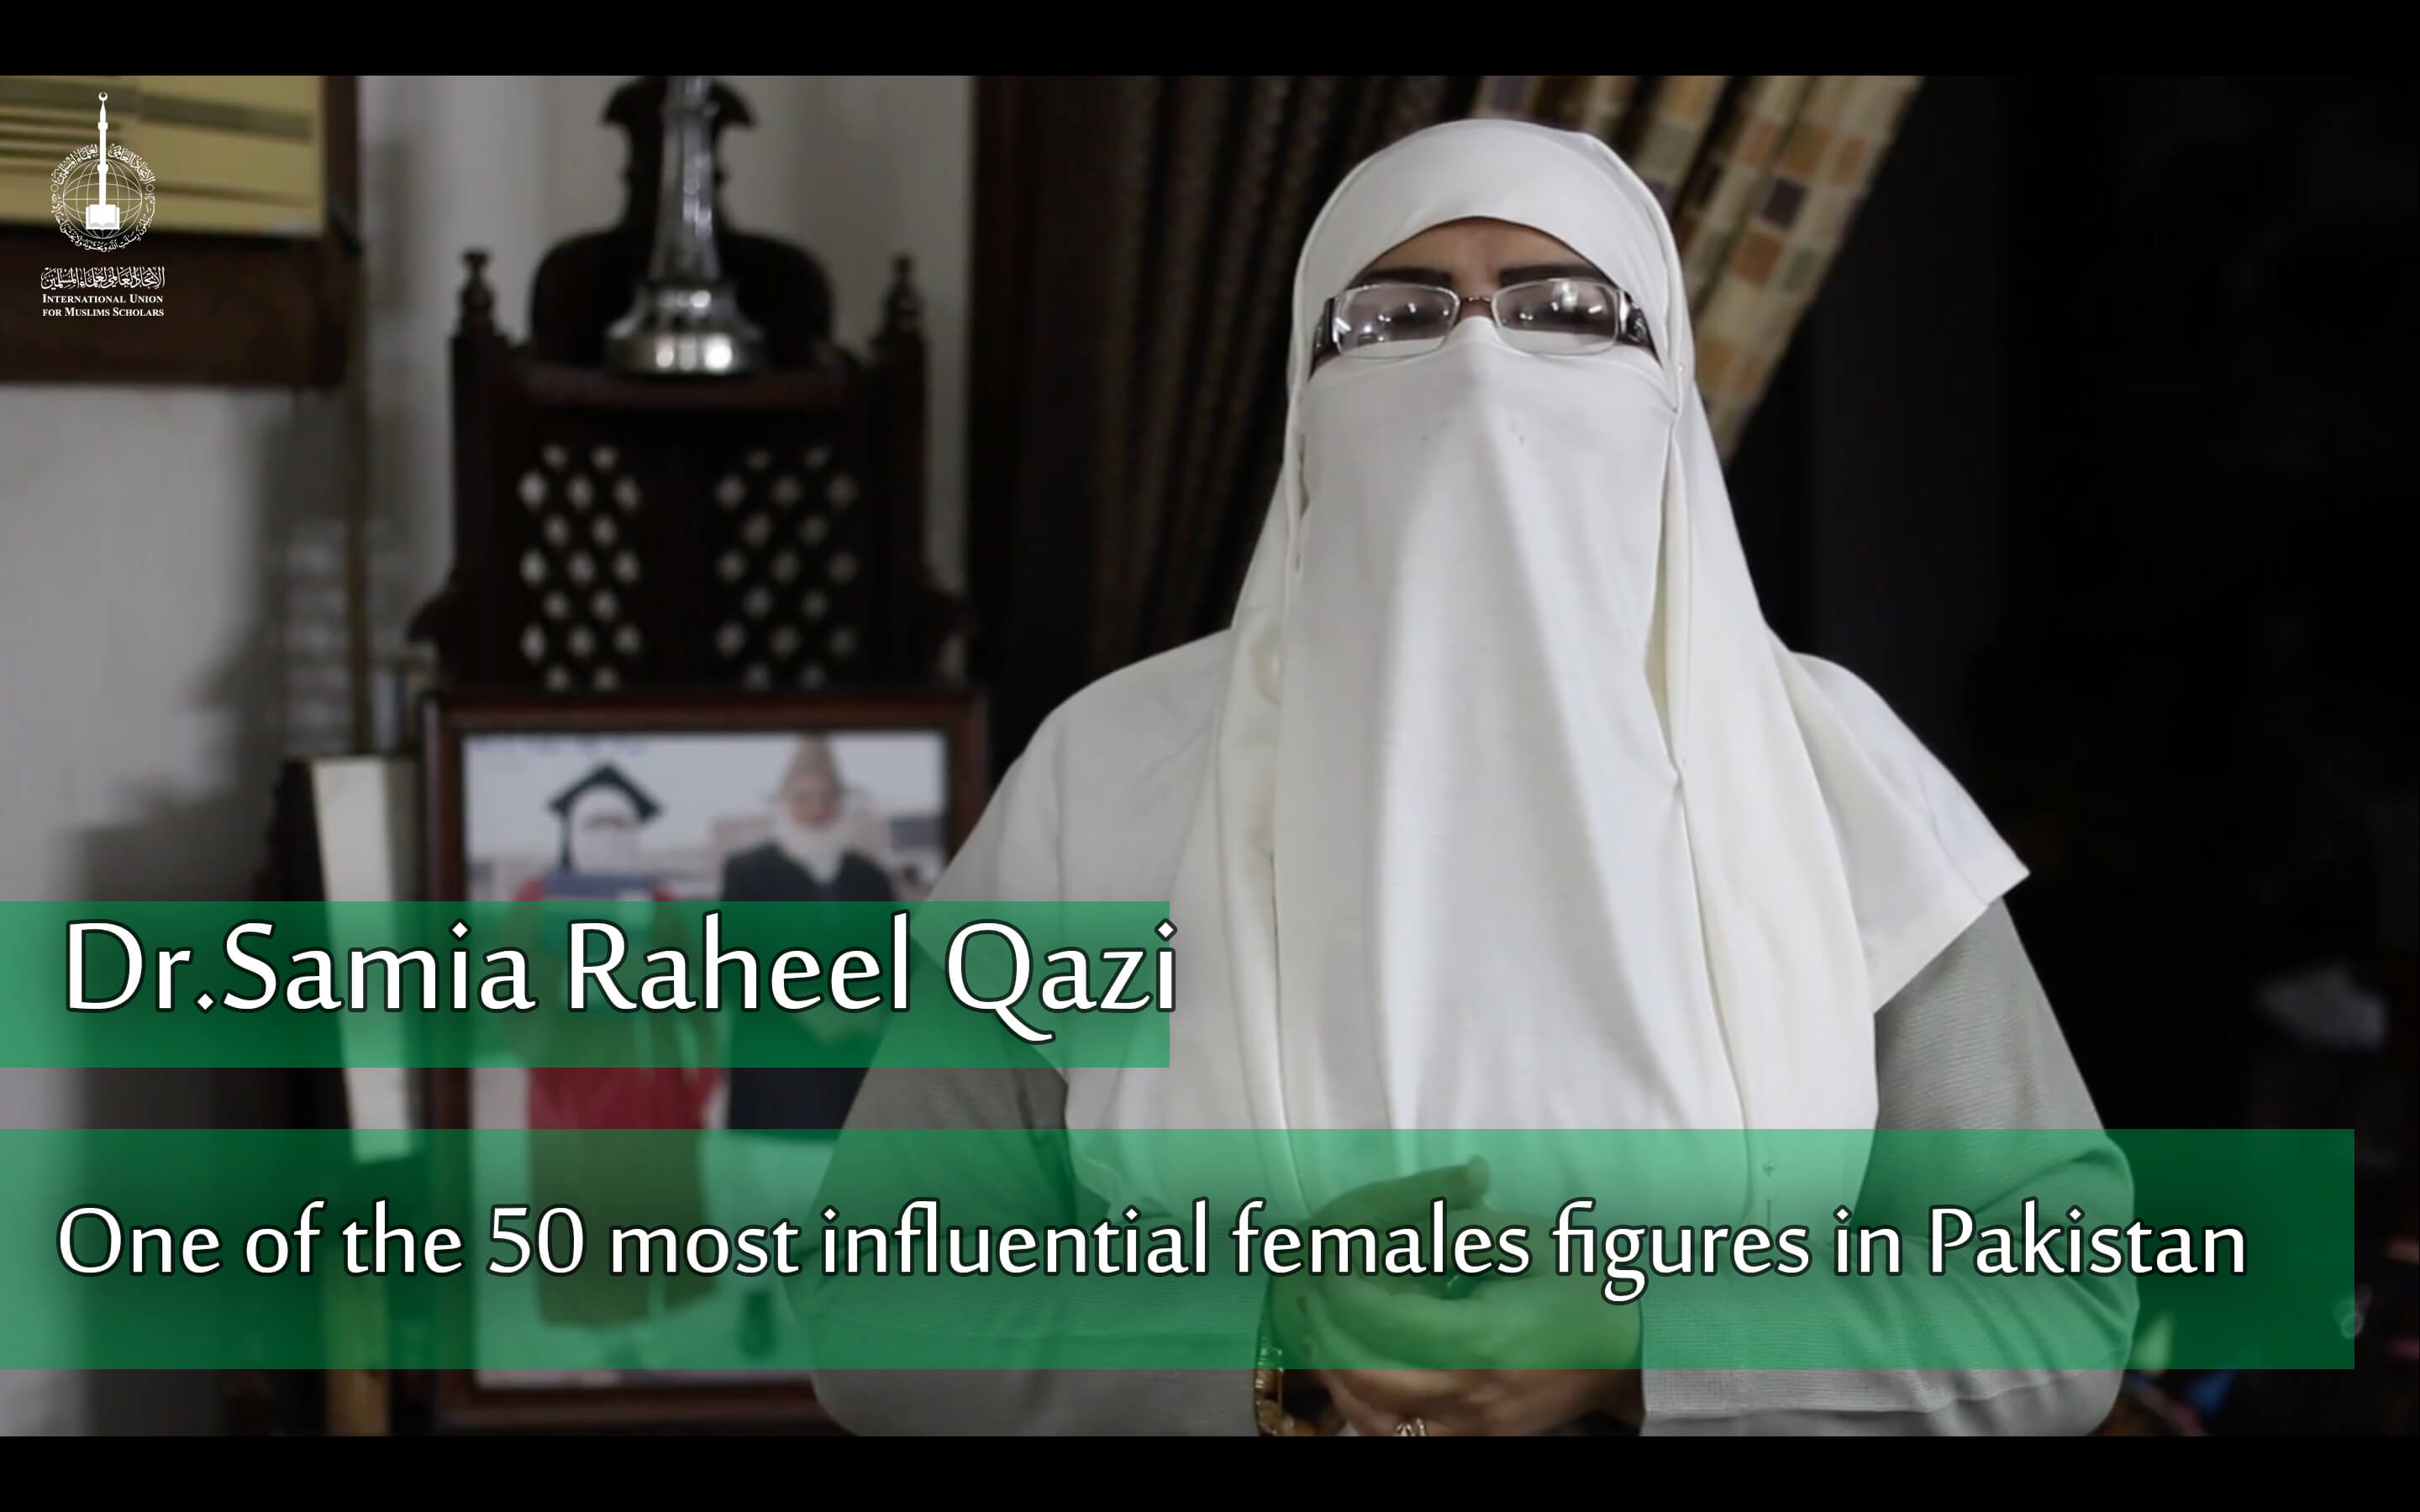 Member of the International Union of Muslim Scholars Dr Samia Raheel Qazi is among 50 most influential women in Pakistan